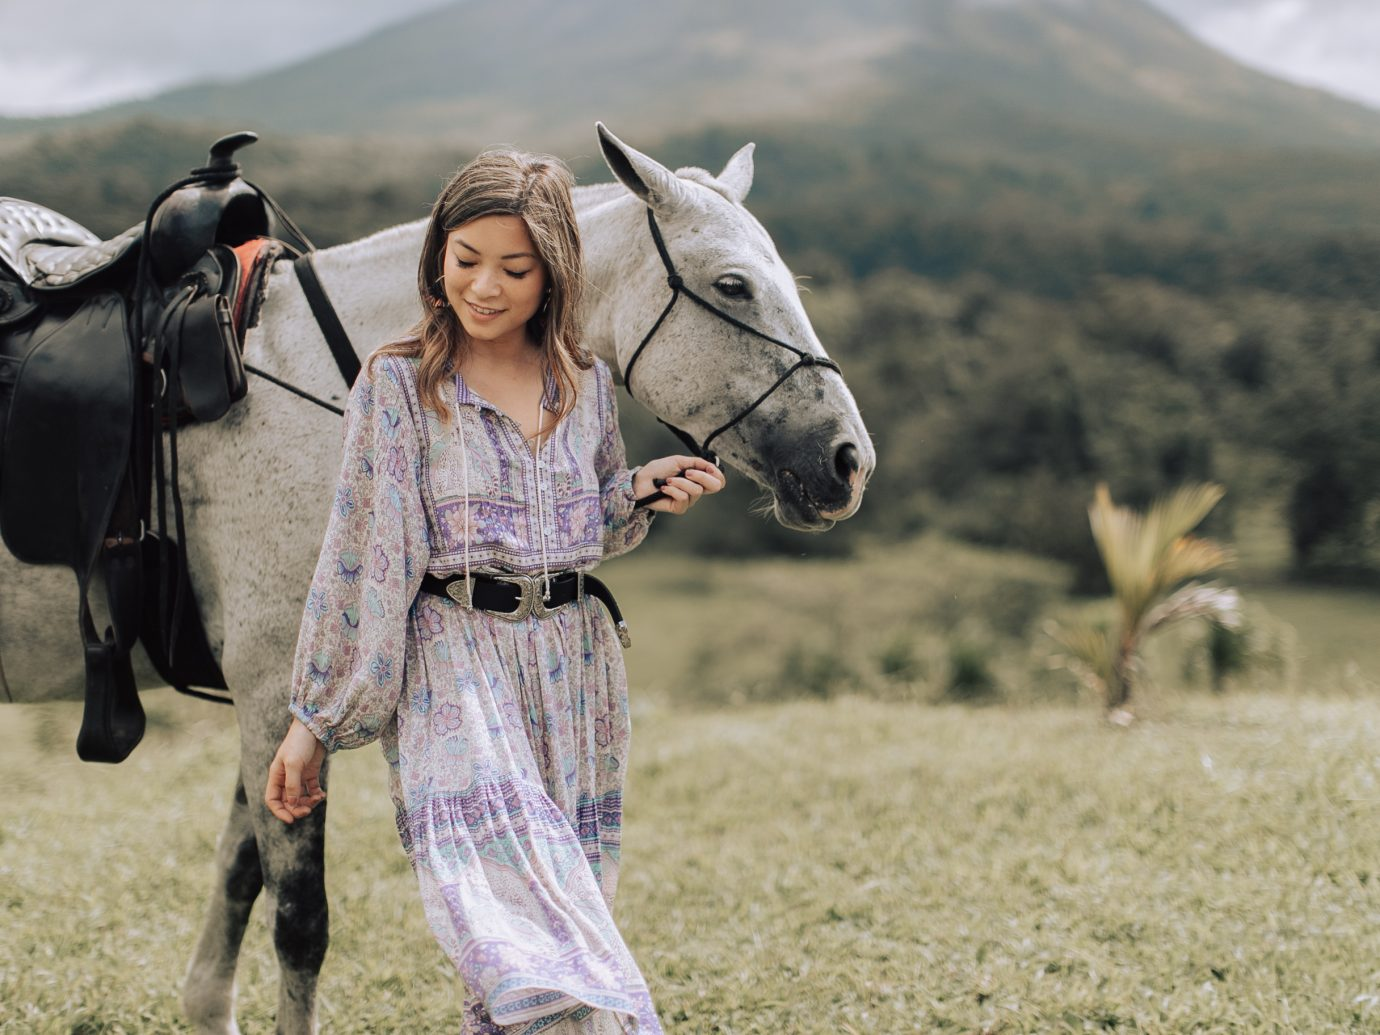 Girl with a horse in Costa Rica